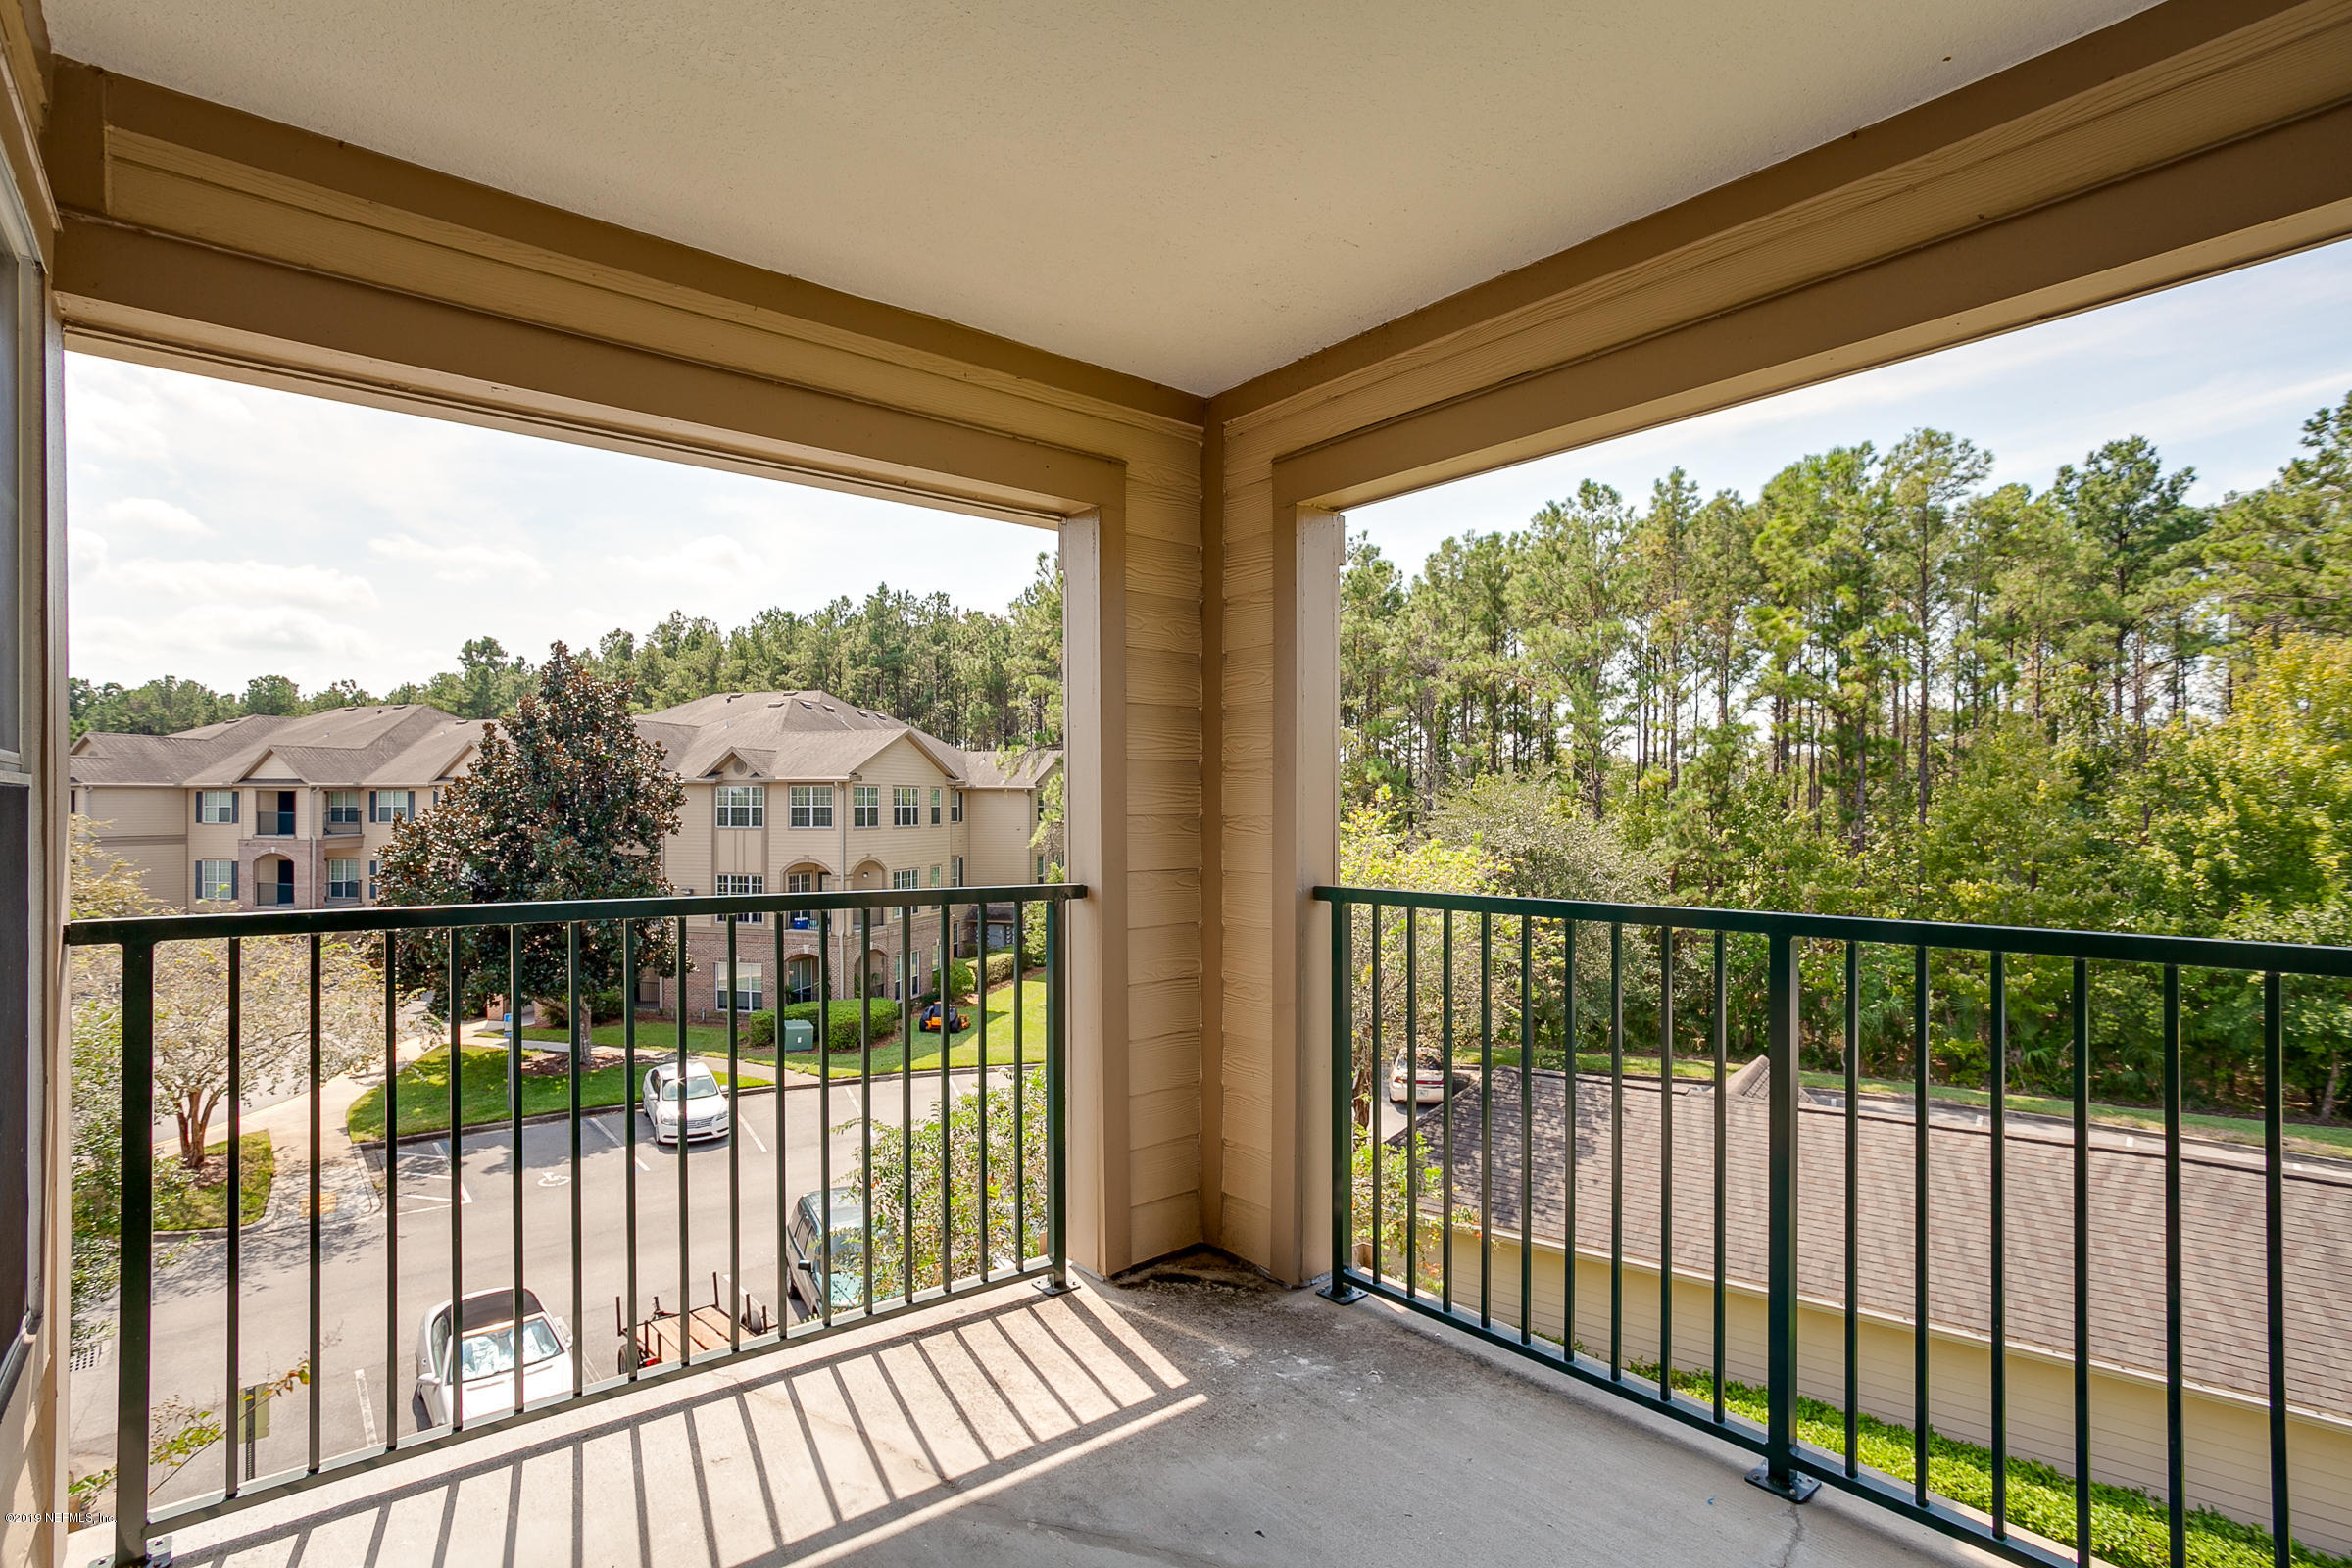 7800 POINT MEADOWS, JACKSONVILLE, FLORIDA 32256, 2 Bedrooms Bedrooms, ,2 BathroomsBathrooms,Condo,For sale,POINT MEADOWS,1017538